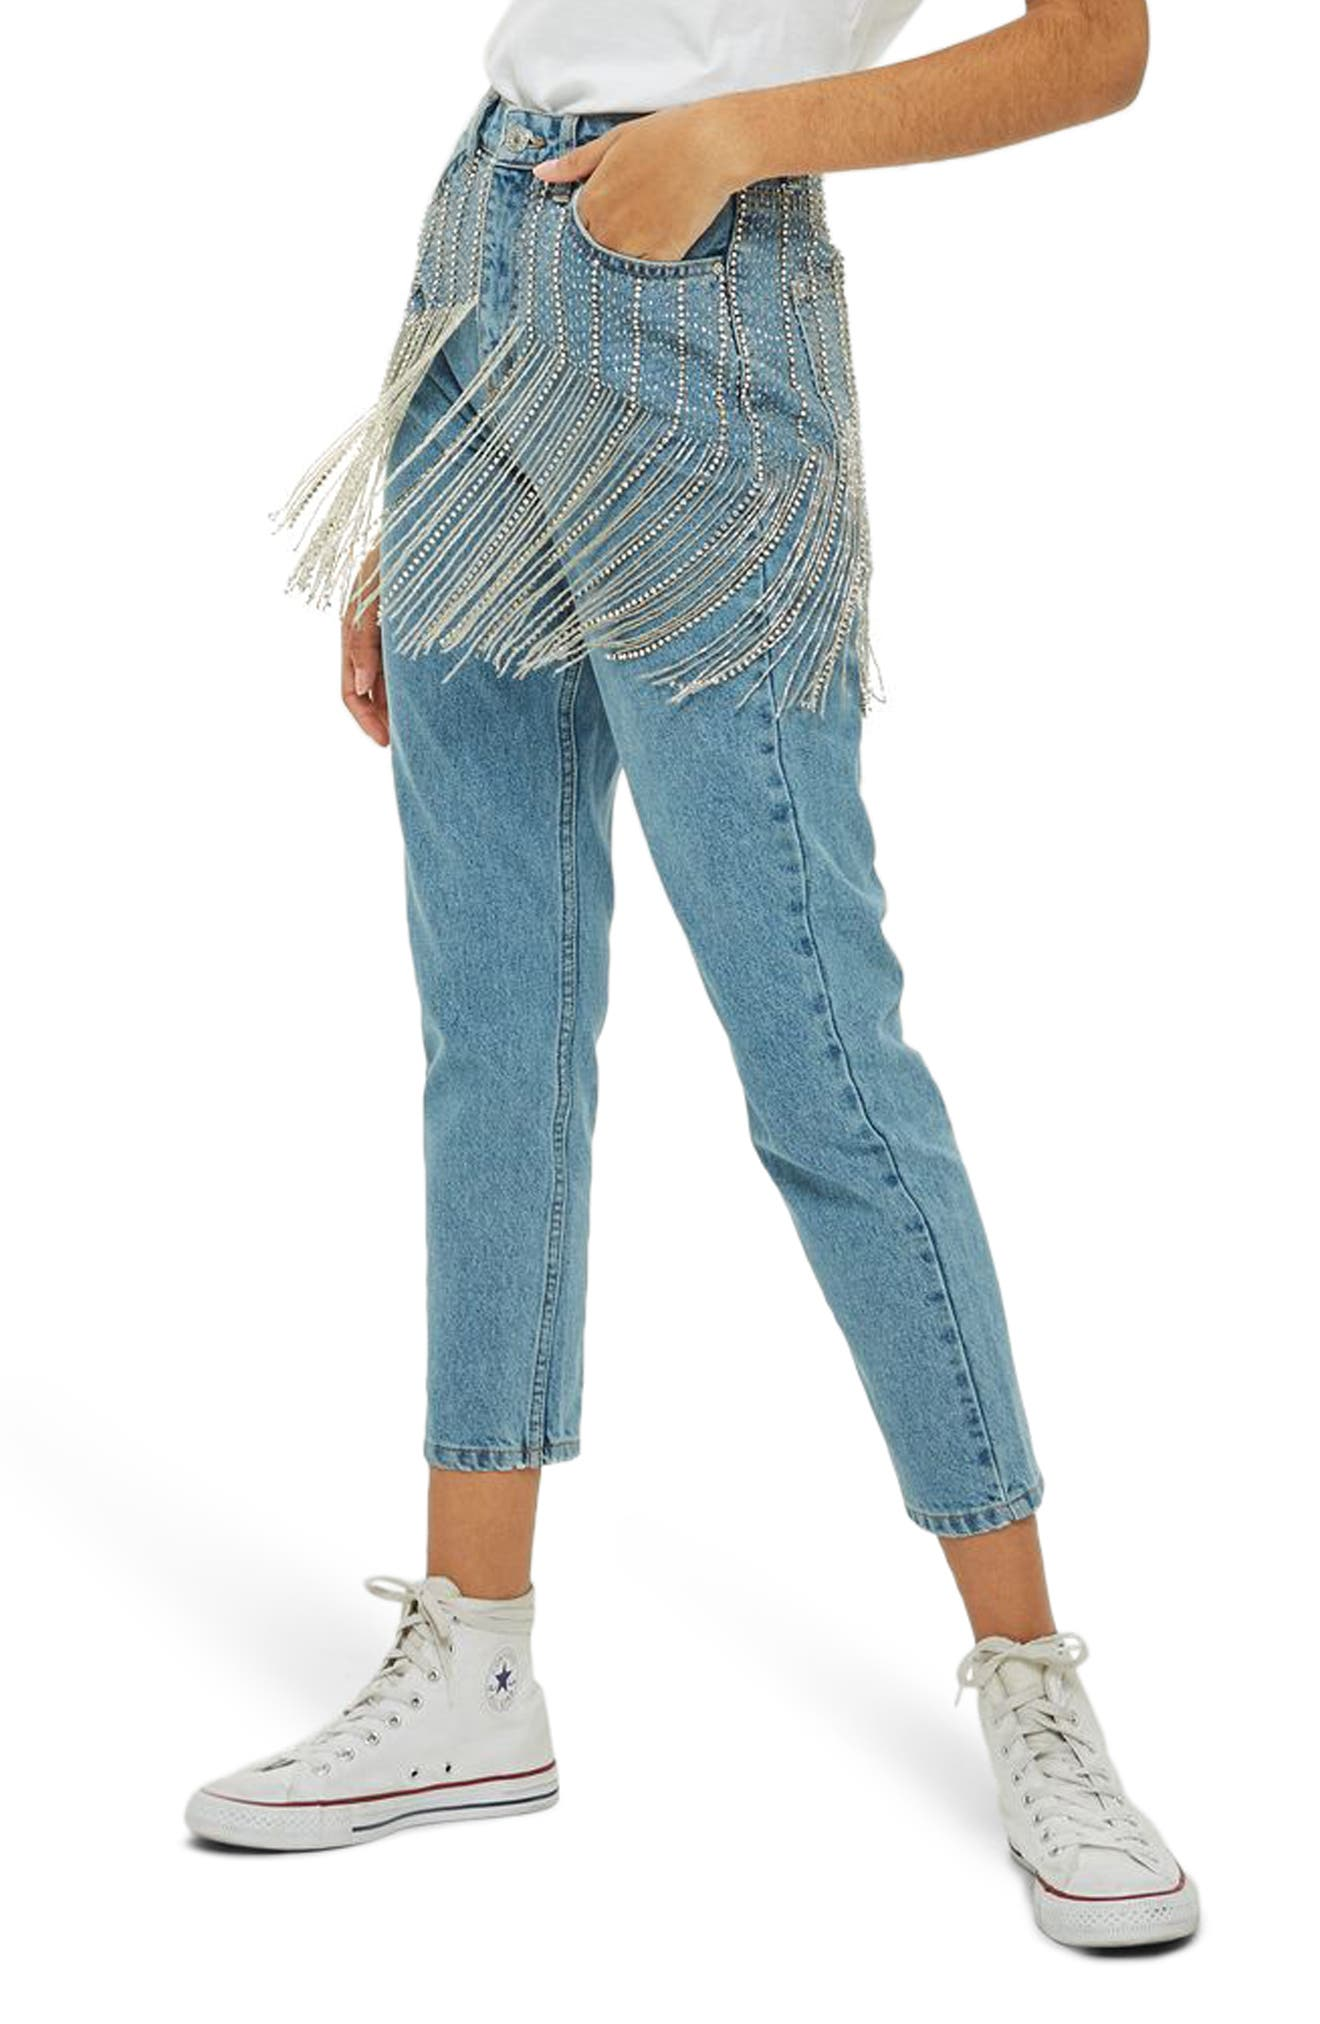 Alternate Image 1 Selected - Topshop Diamante Crystal Fringe Mom Jeans